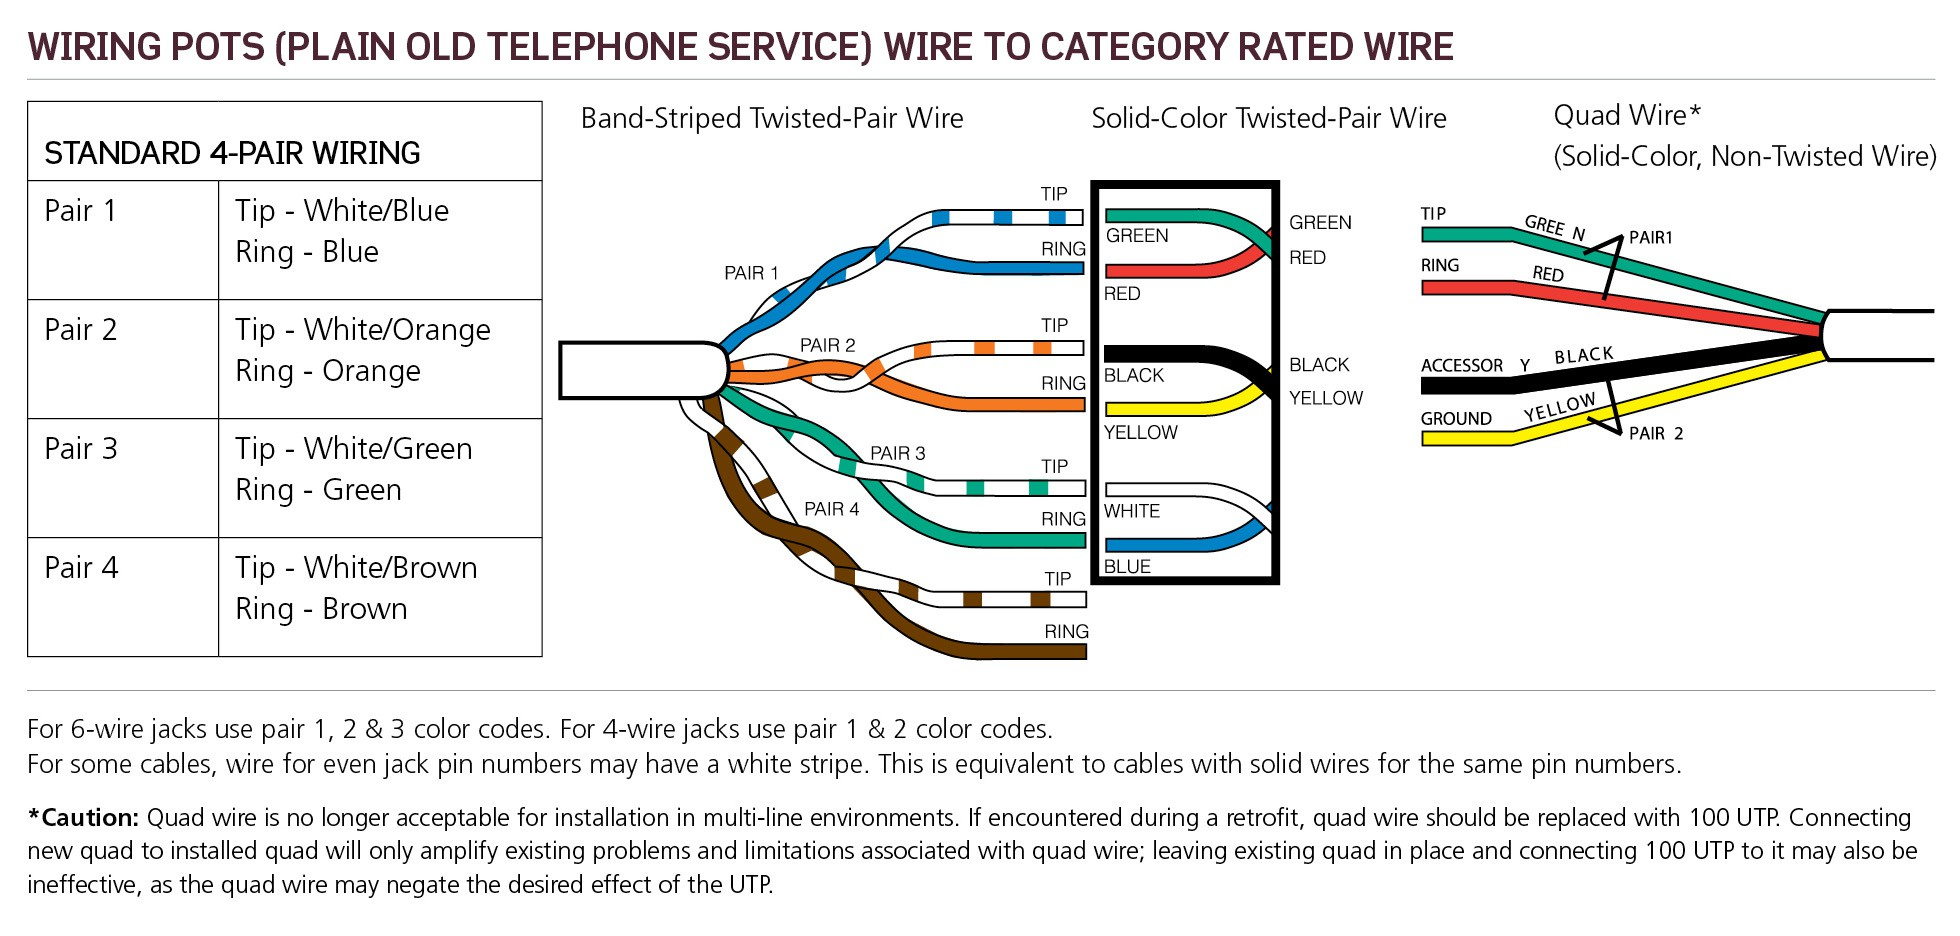 twisted pair wiring diagram 49cc 2 stroke engine library